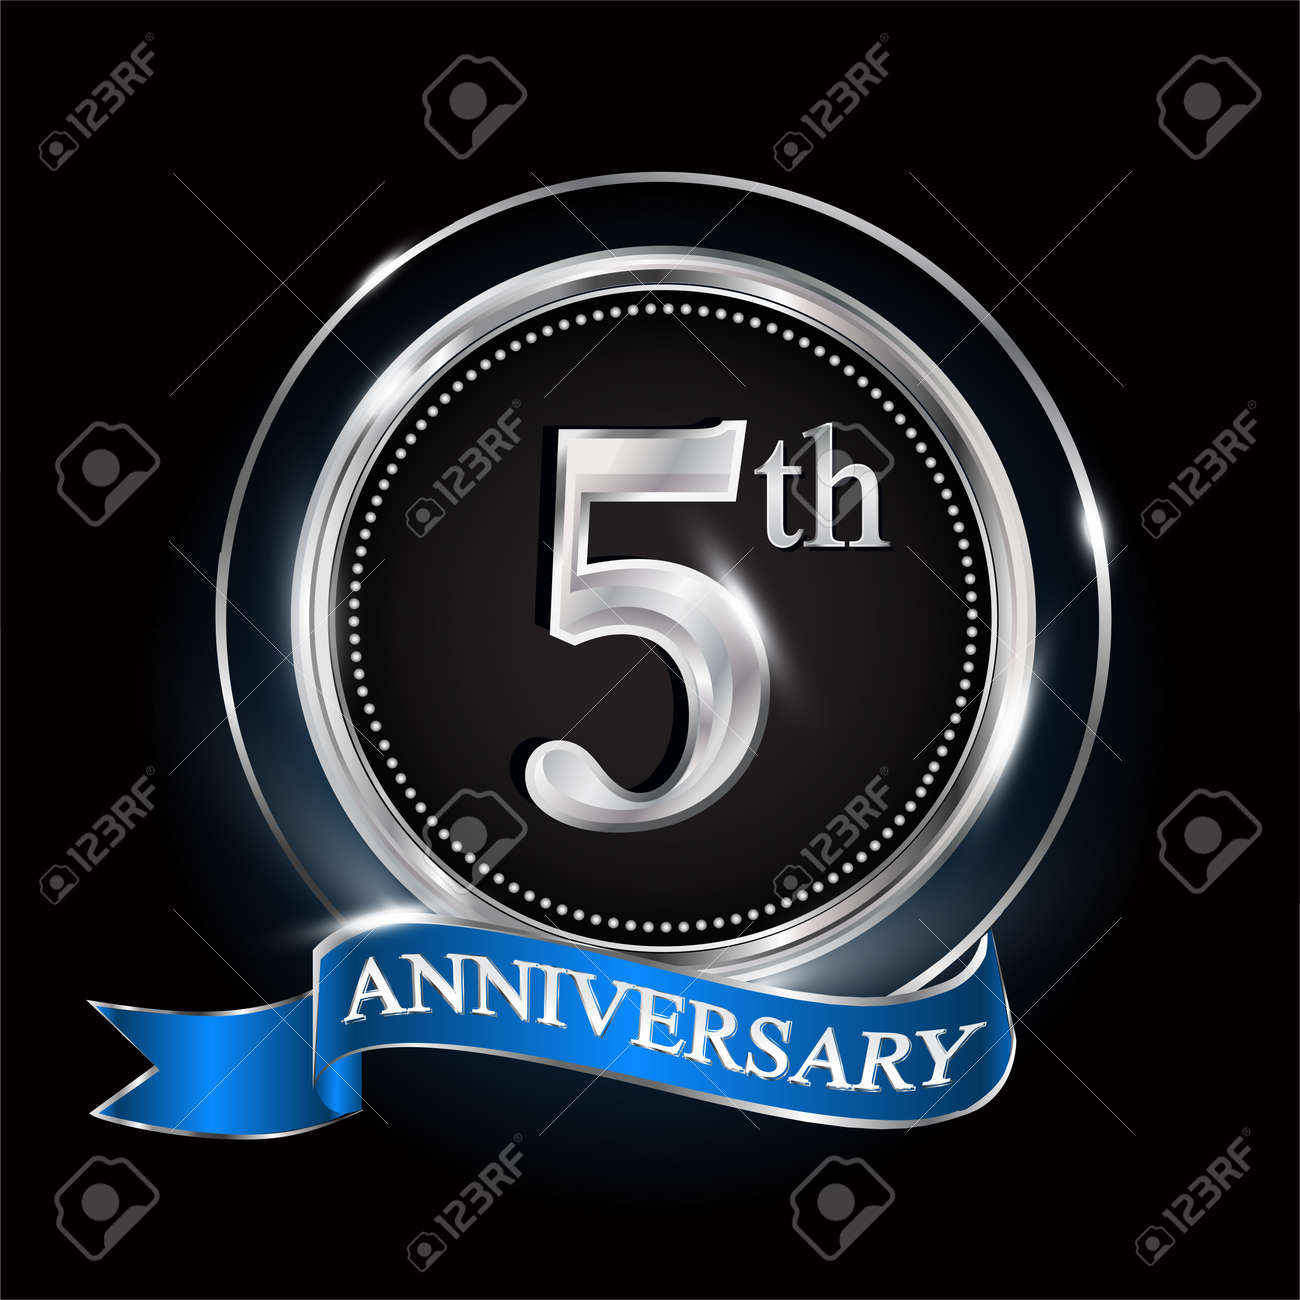 5th anniversary logo with silver ring and blue ribbon. - 159299017